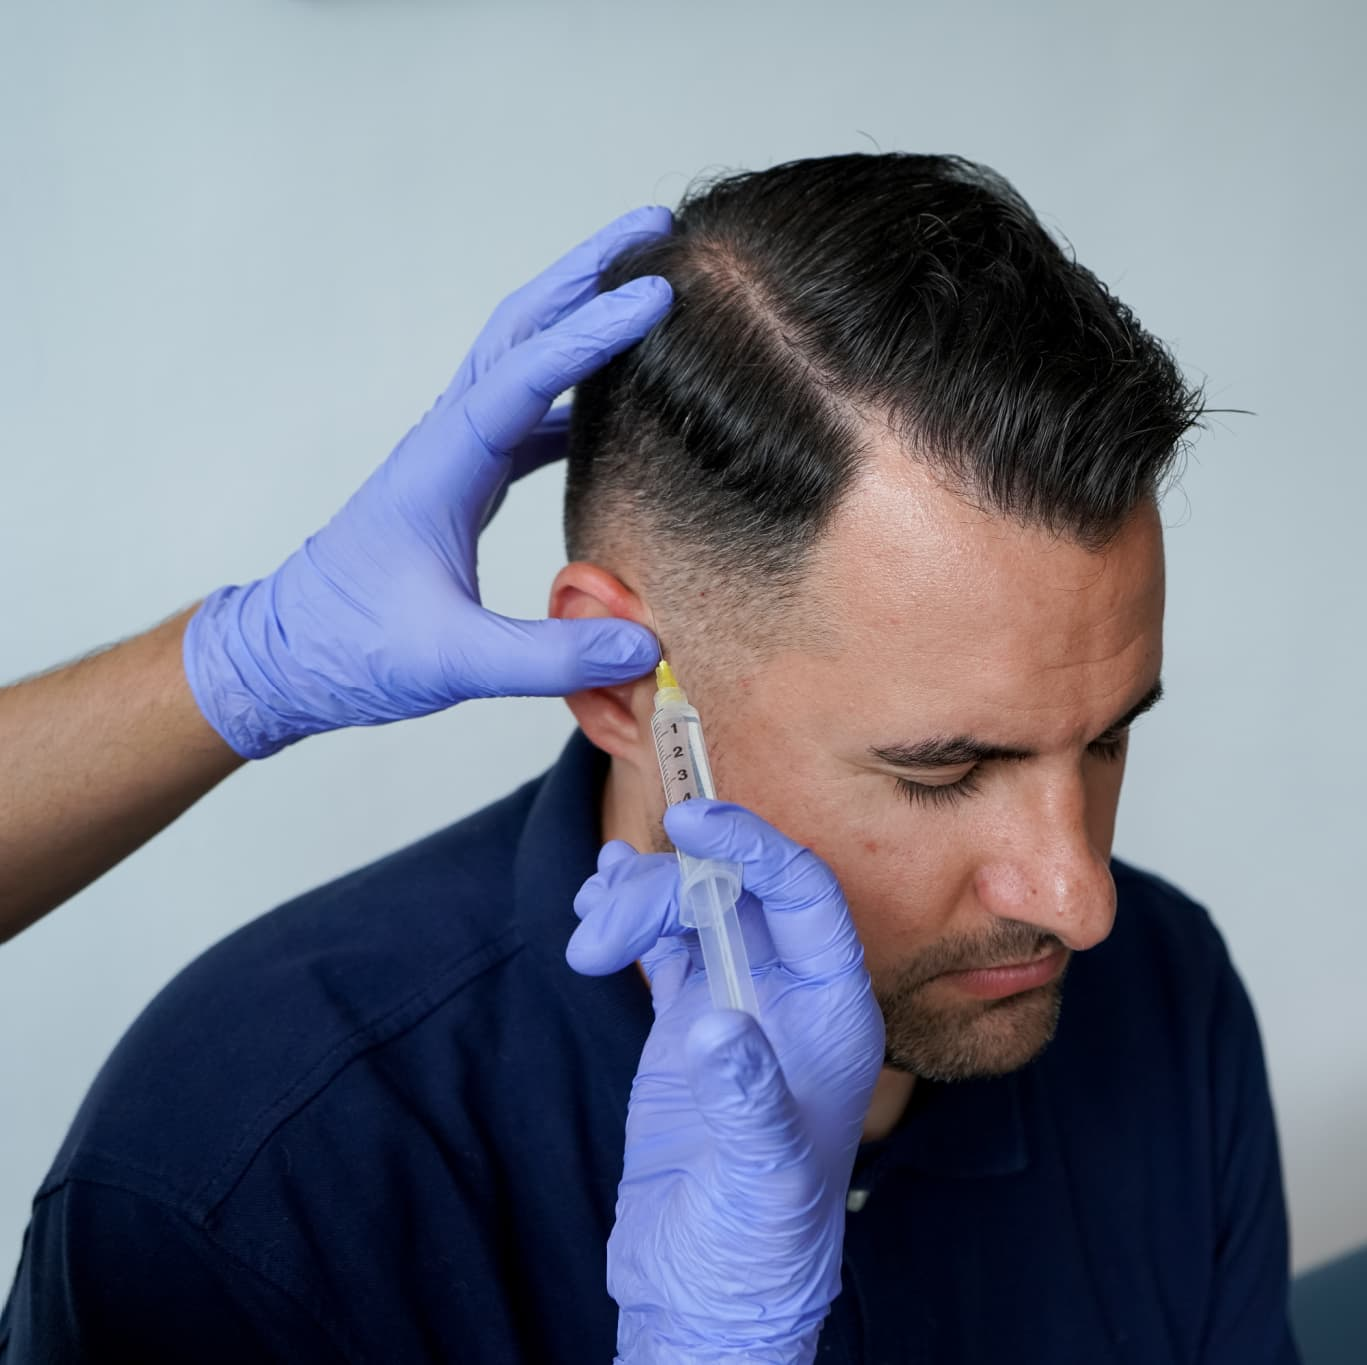 botox injection near man's hairline